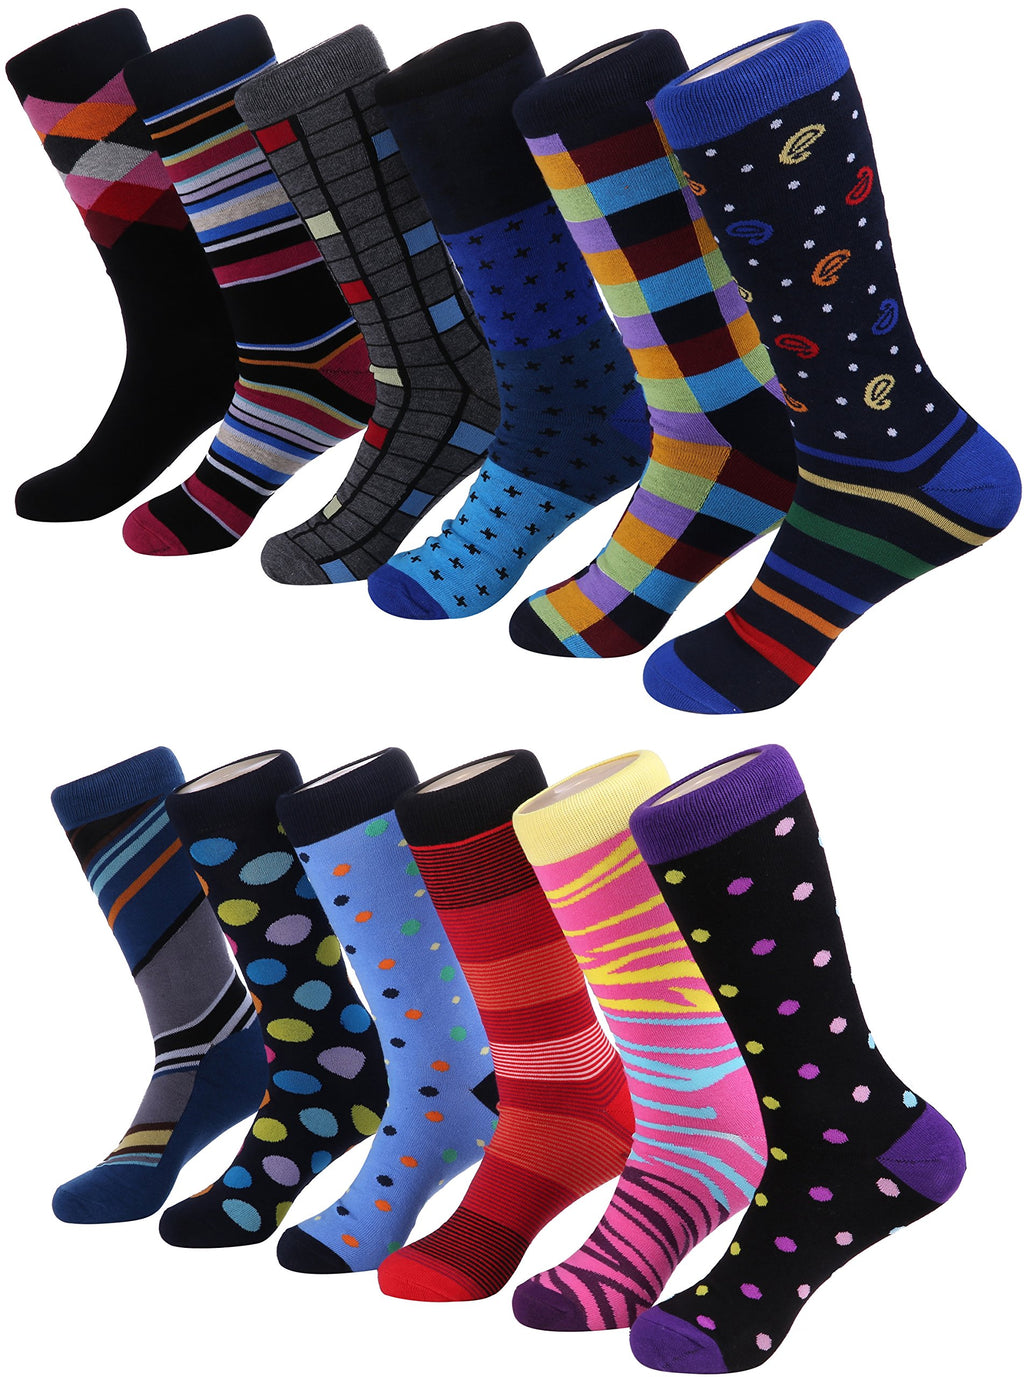 Marino Men's Dress Socks